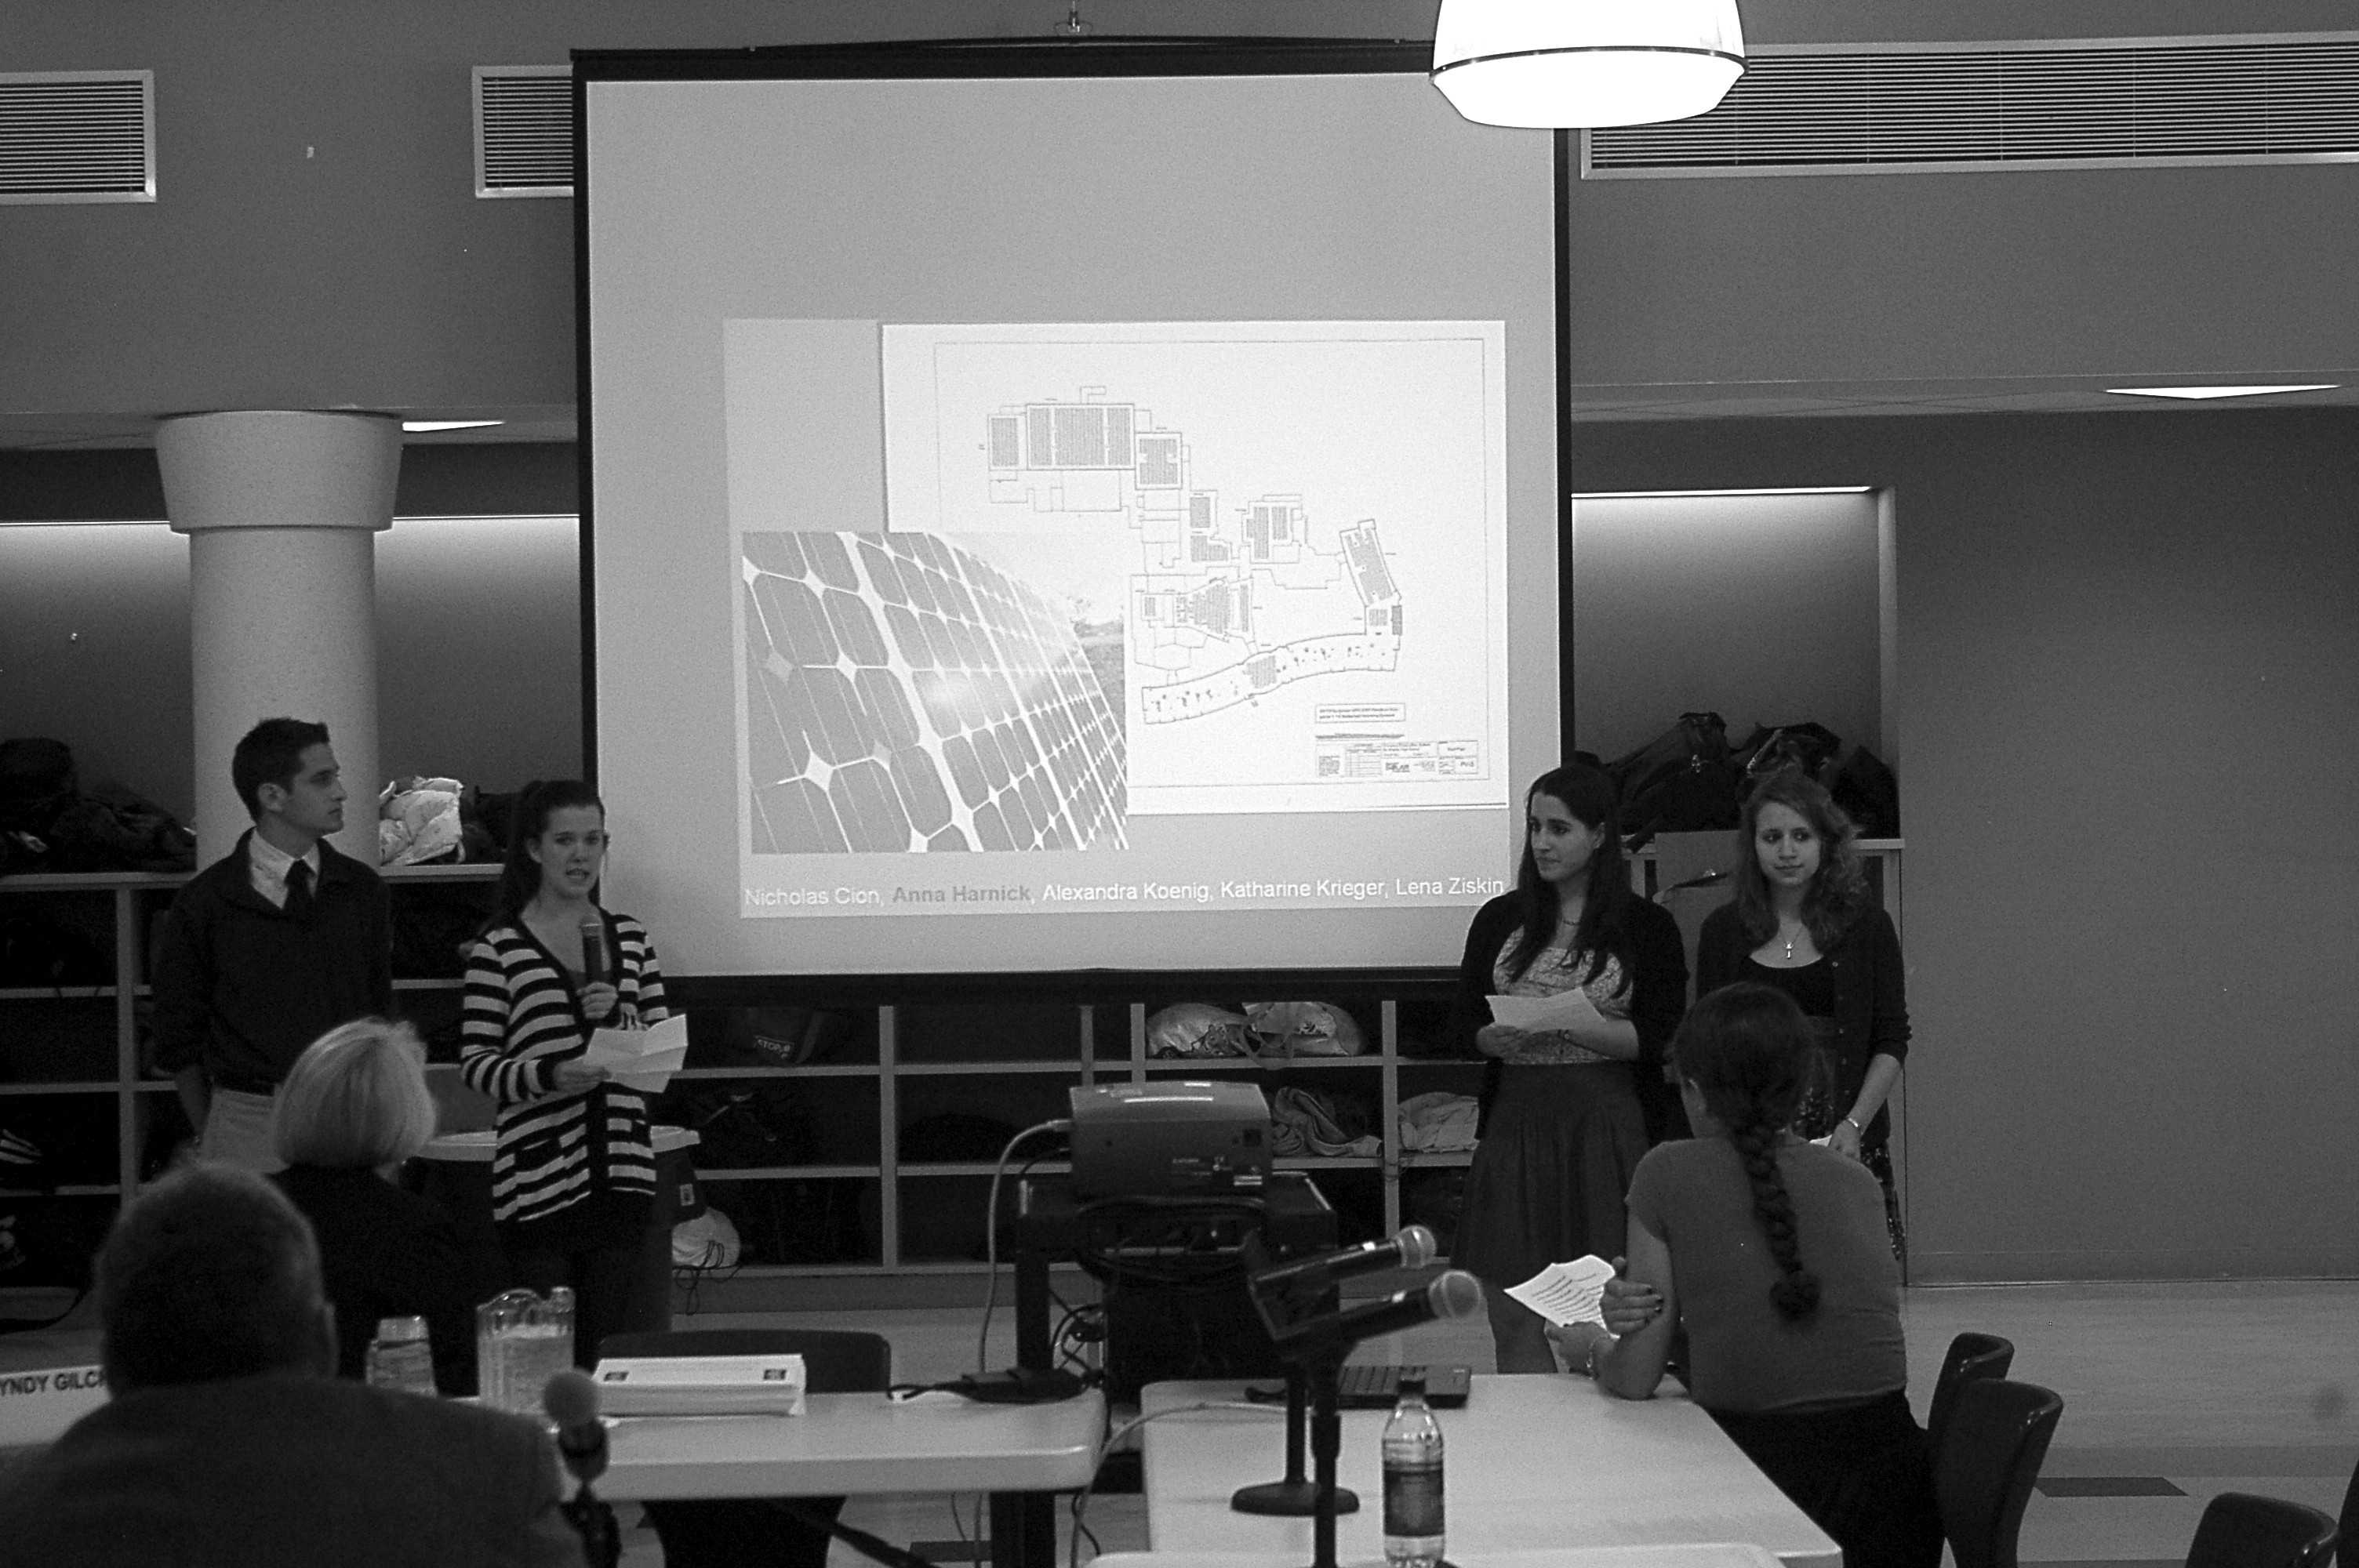 SWEET, SWEET VICTORY: (From left to right) Nick Cion '10, Annie Harnick '10, Lexa Koenig '10 and Lena Ziskin '10 present their winning solution to the BOE at their March 8 meeting. The team, which also included Kat Kreiger '10 won $5,000. | Photo by Petey Menz '11